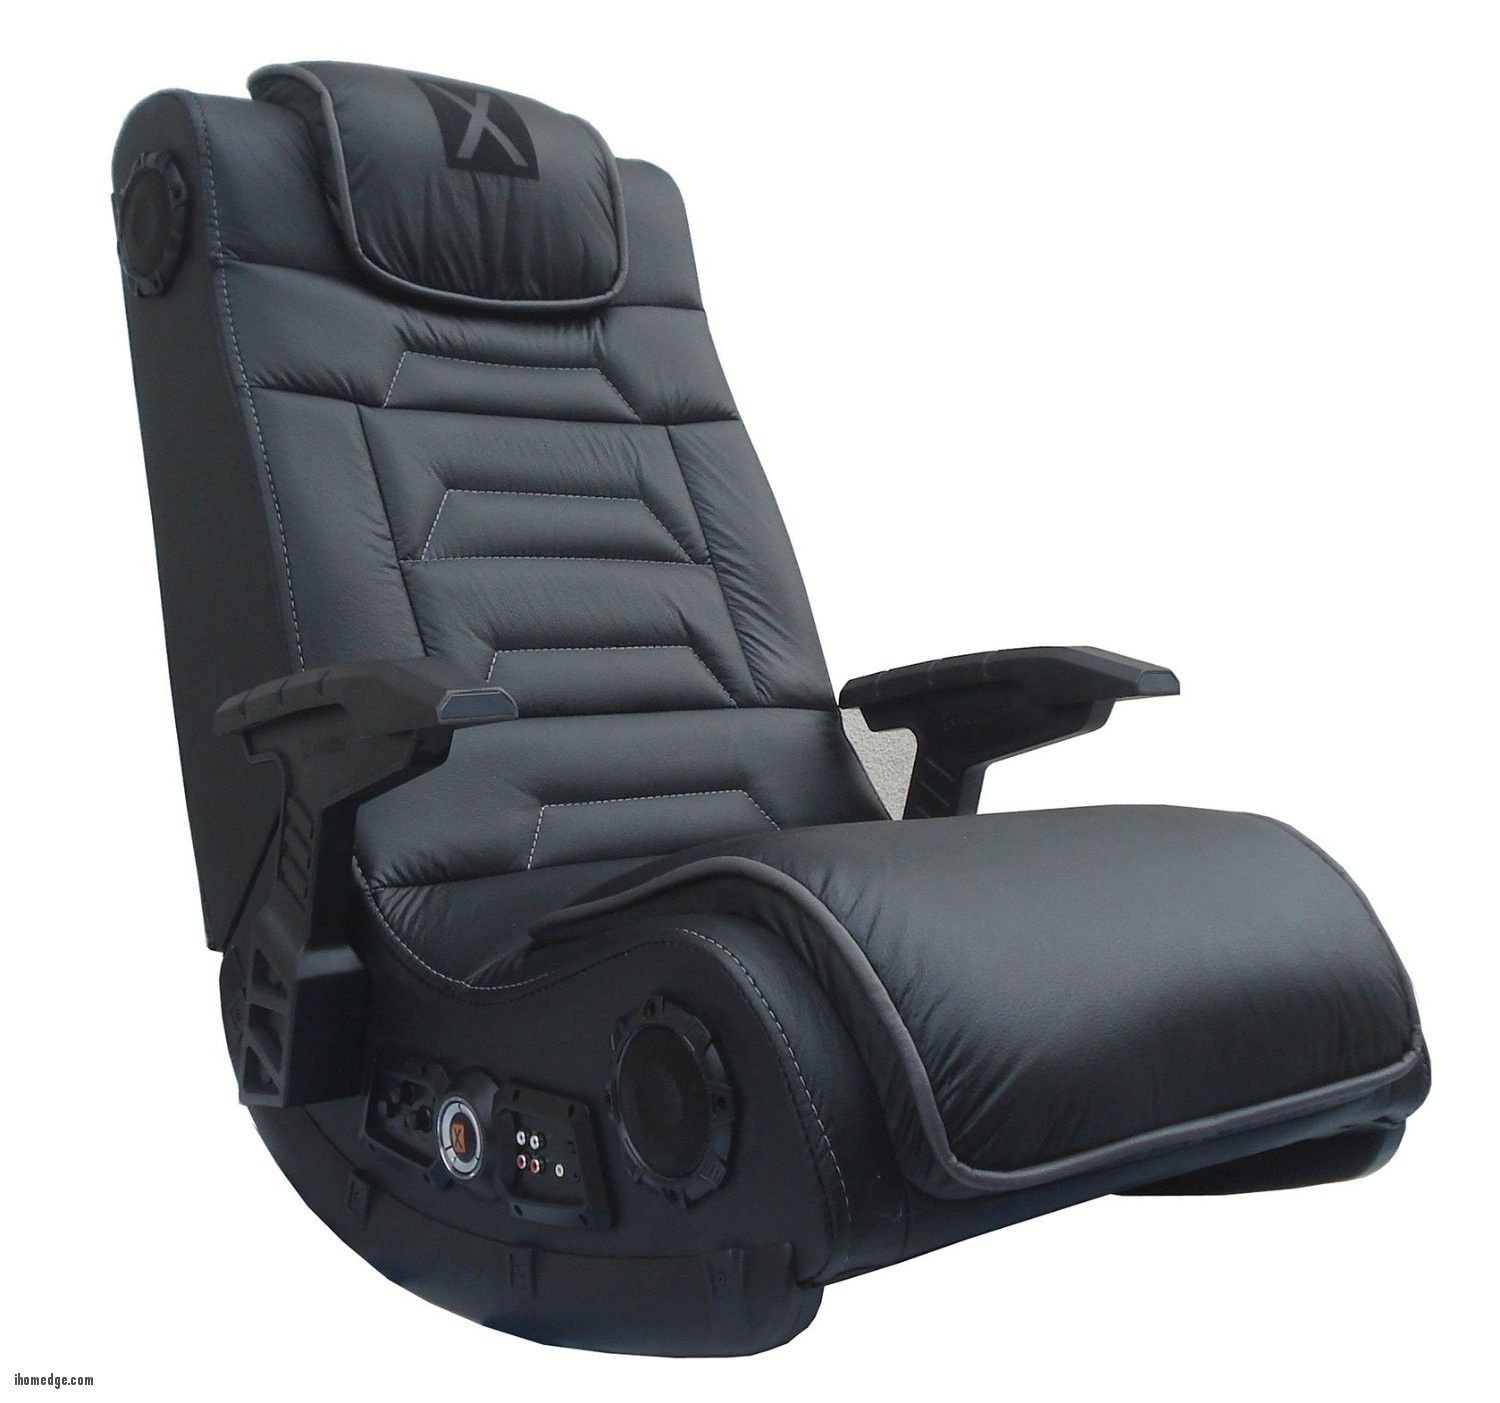 comfortable computer chairs. Nice Awesome Comfortable Computer Chair , What Are The Different Kinds Of Gaming Chairs Http://ihomedge.com/comfortable-computer-chair/9688 O